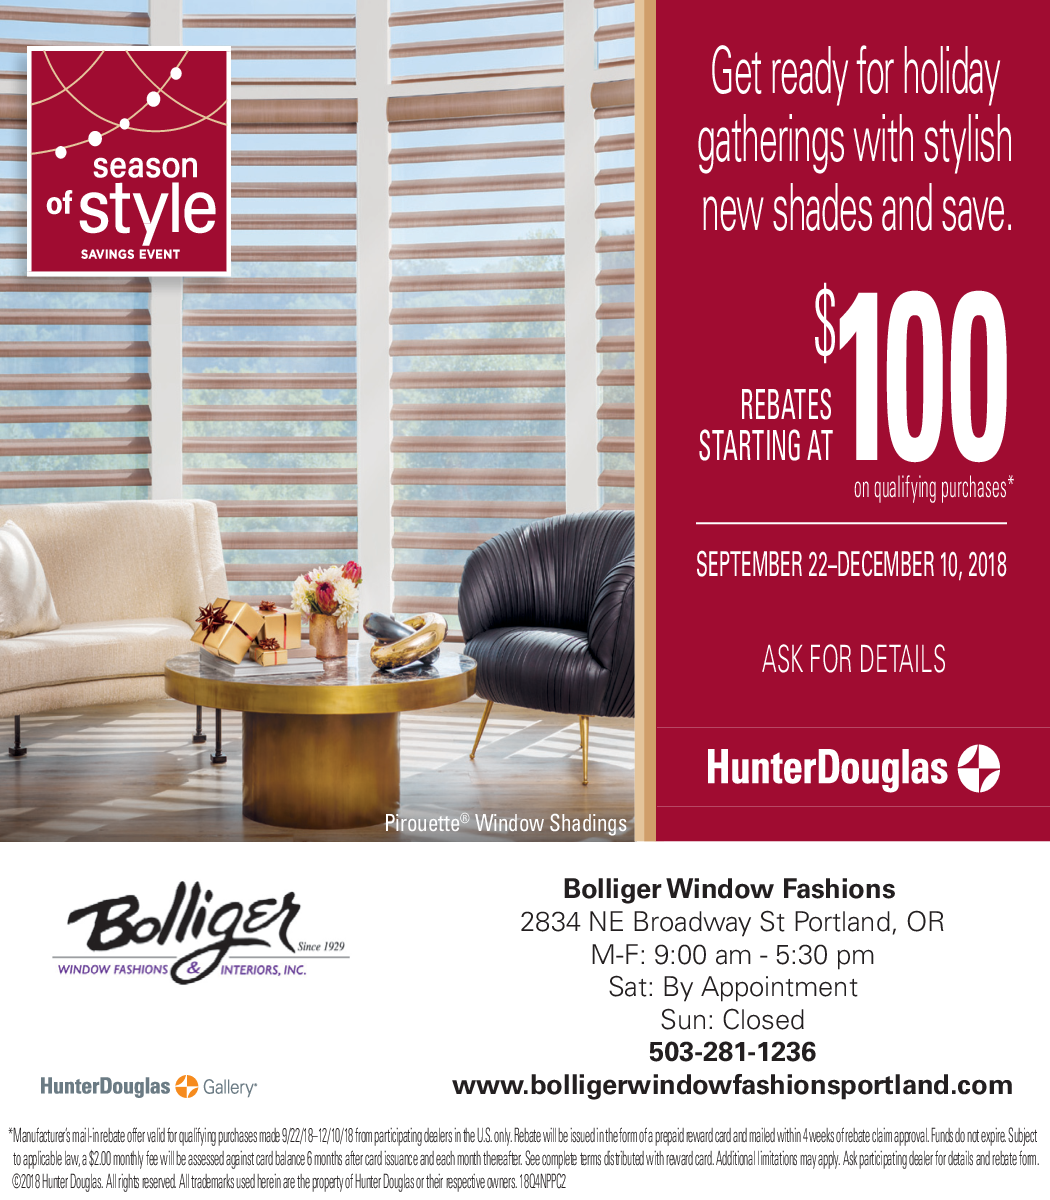 Season Of Style Saving Event In Portland OR Home Decor